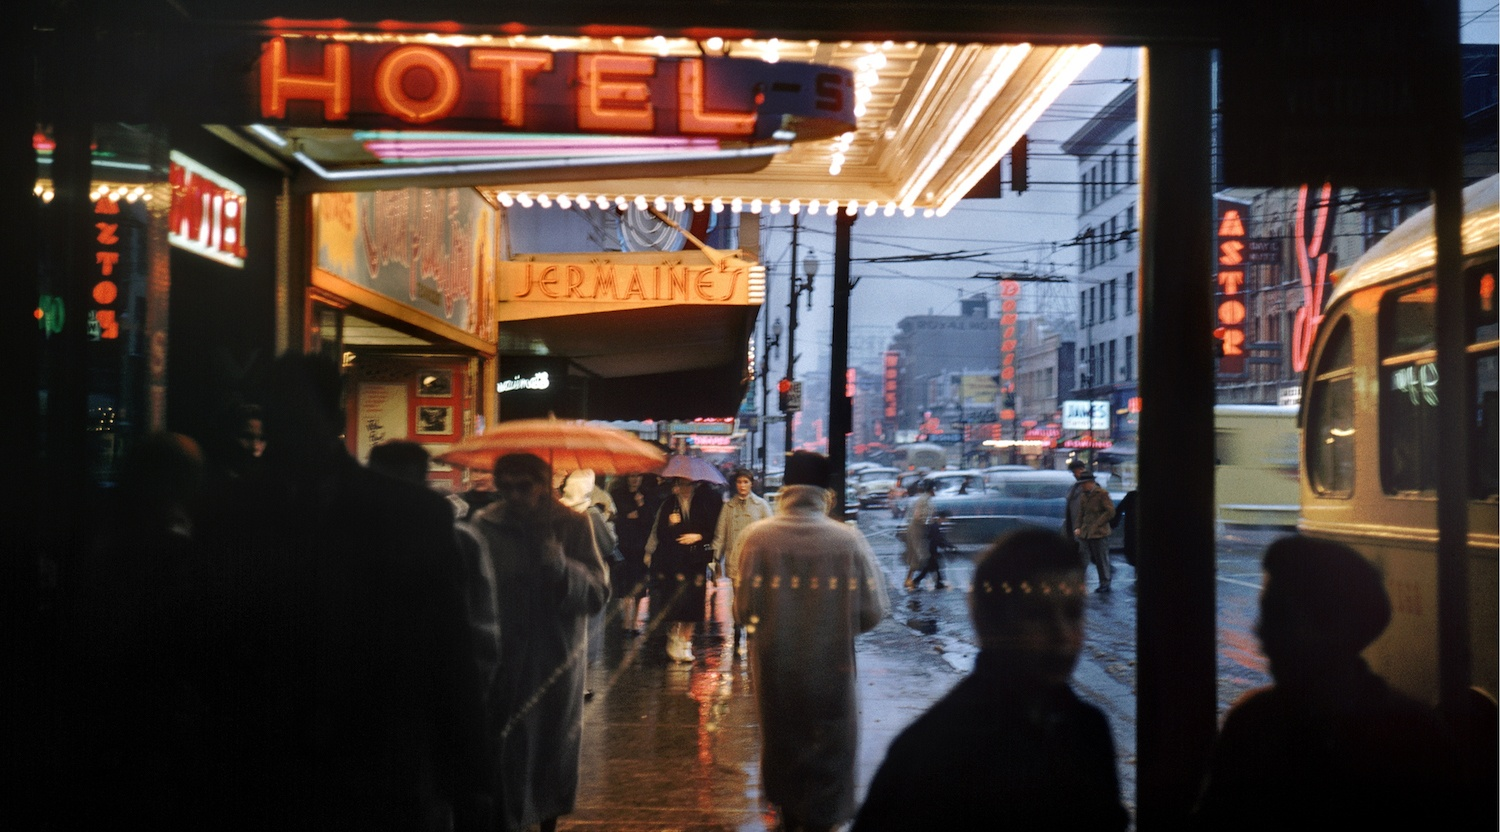 Fred Herzog rare street photography exhibition in Vancouver